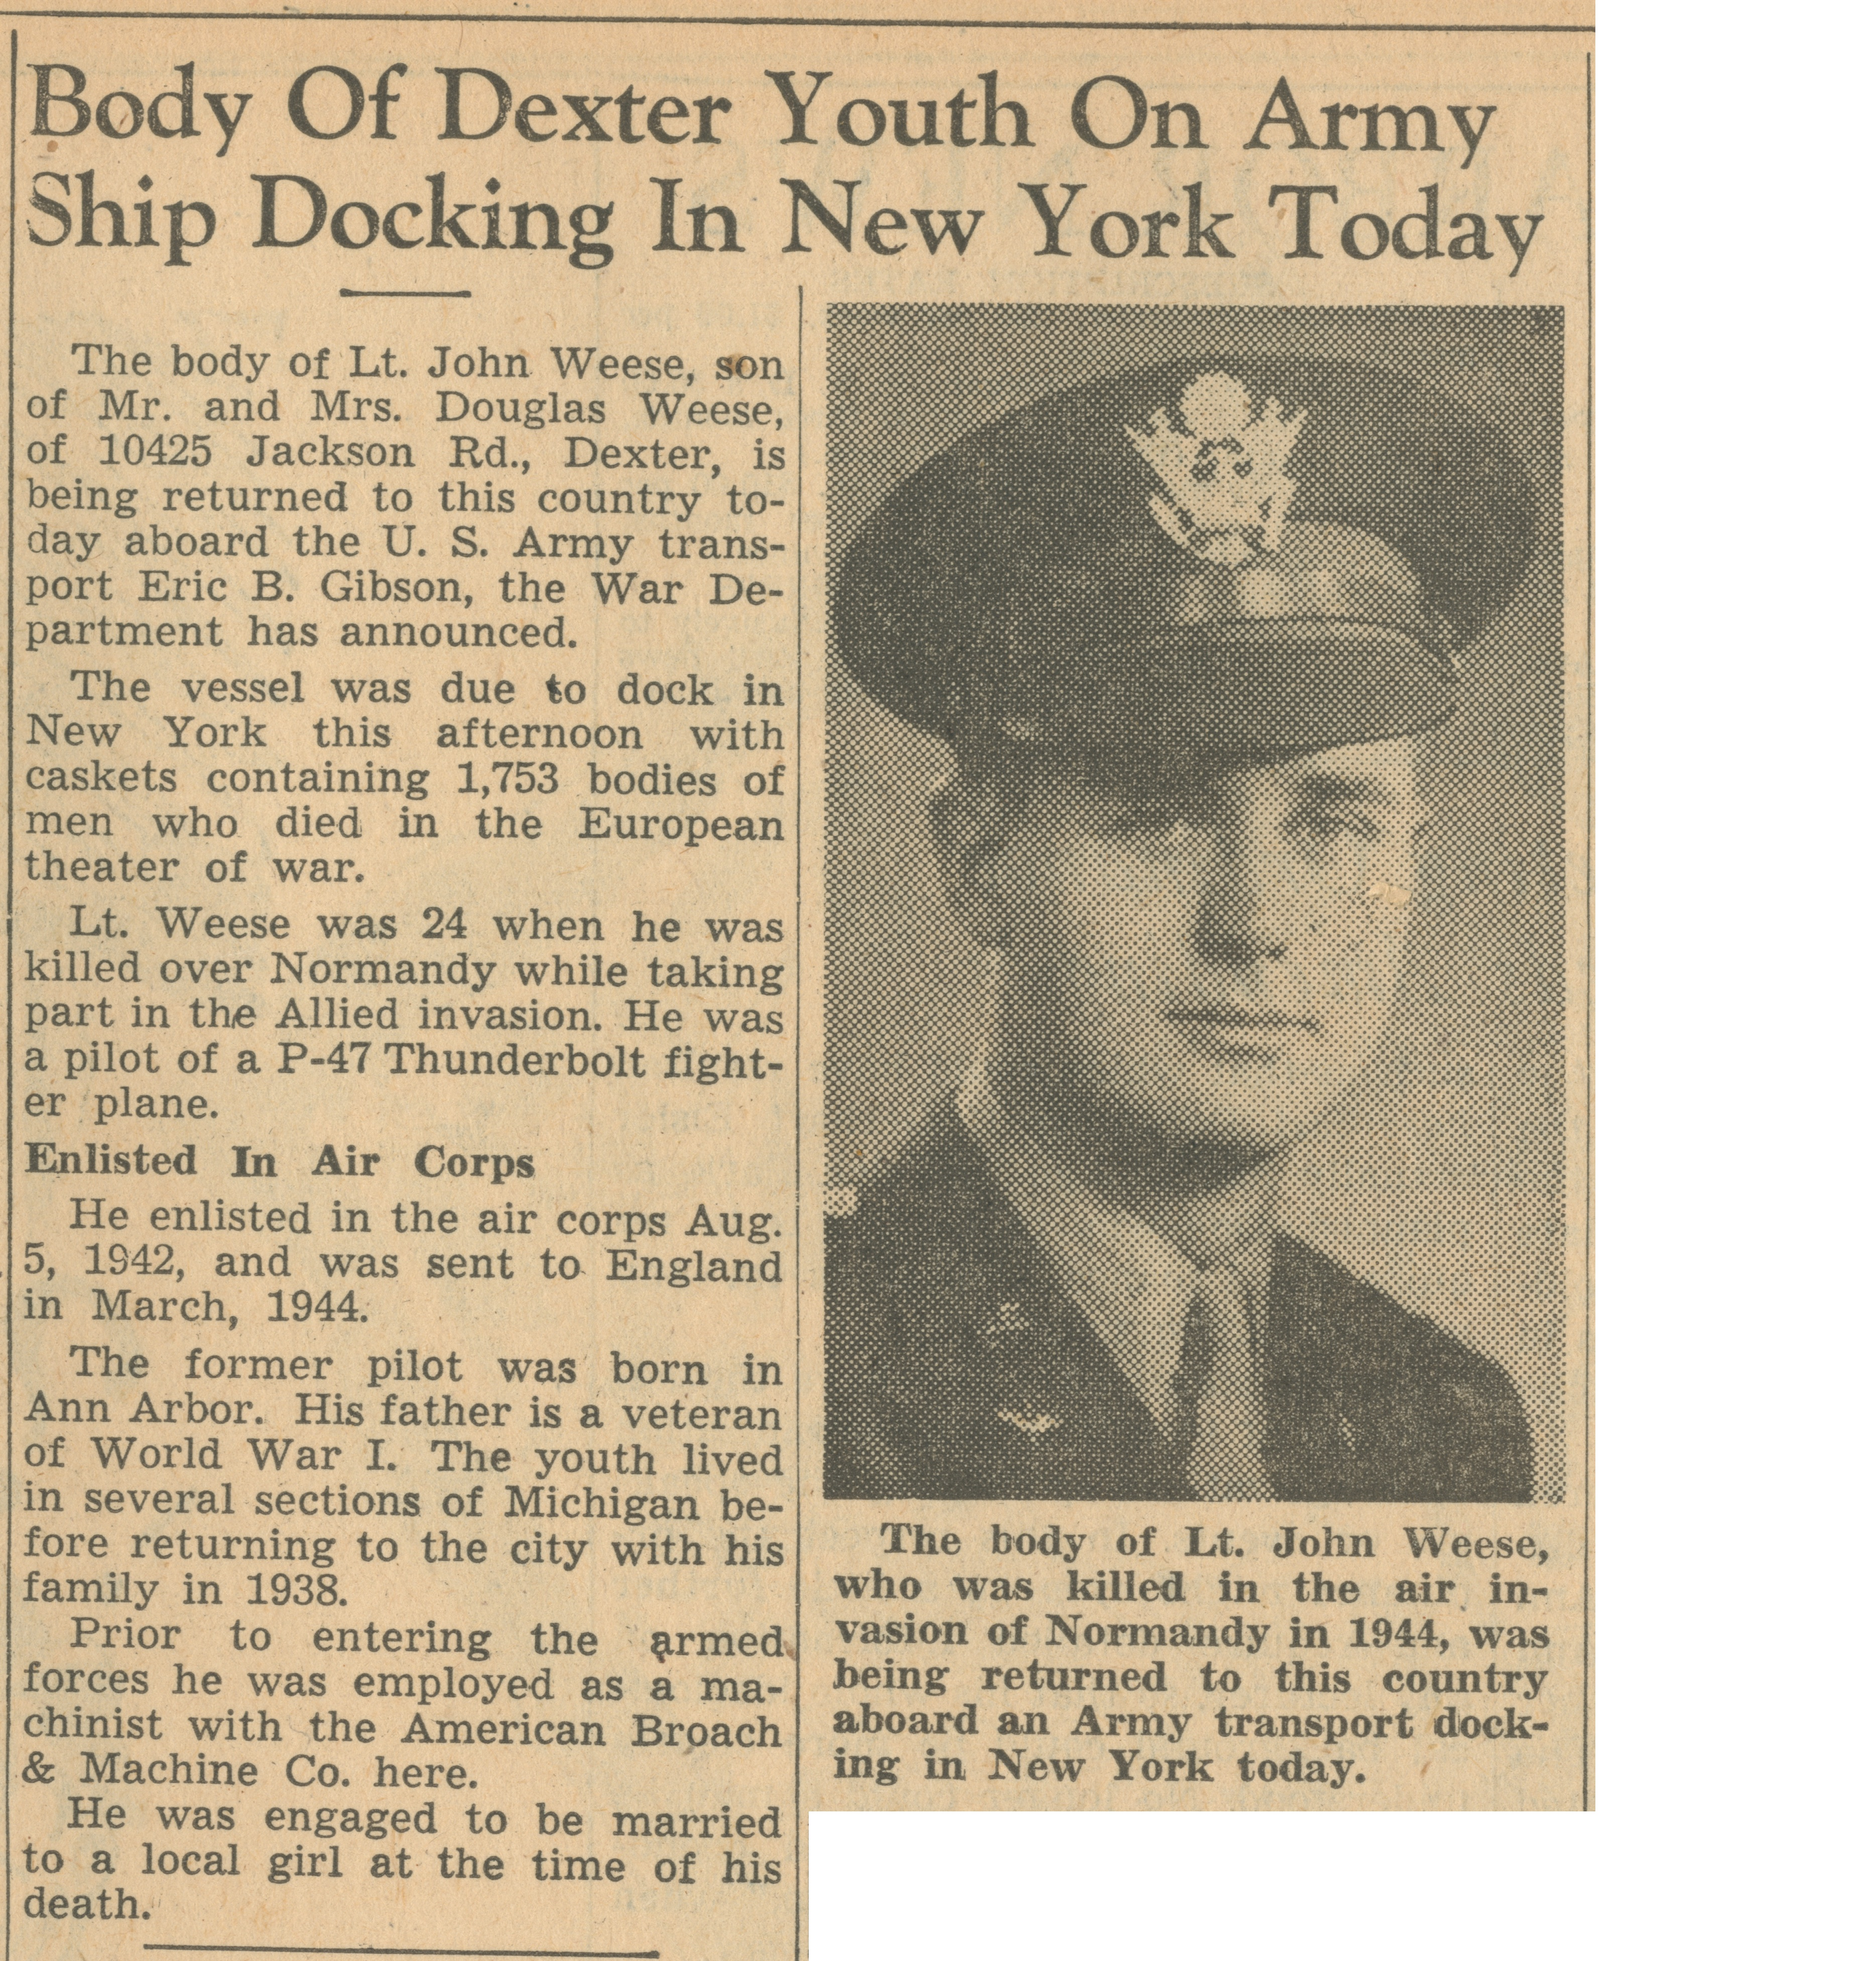 Body Of Dexter Youth On Army Ship Docking In New York Today image